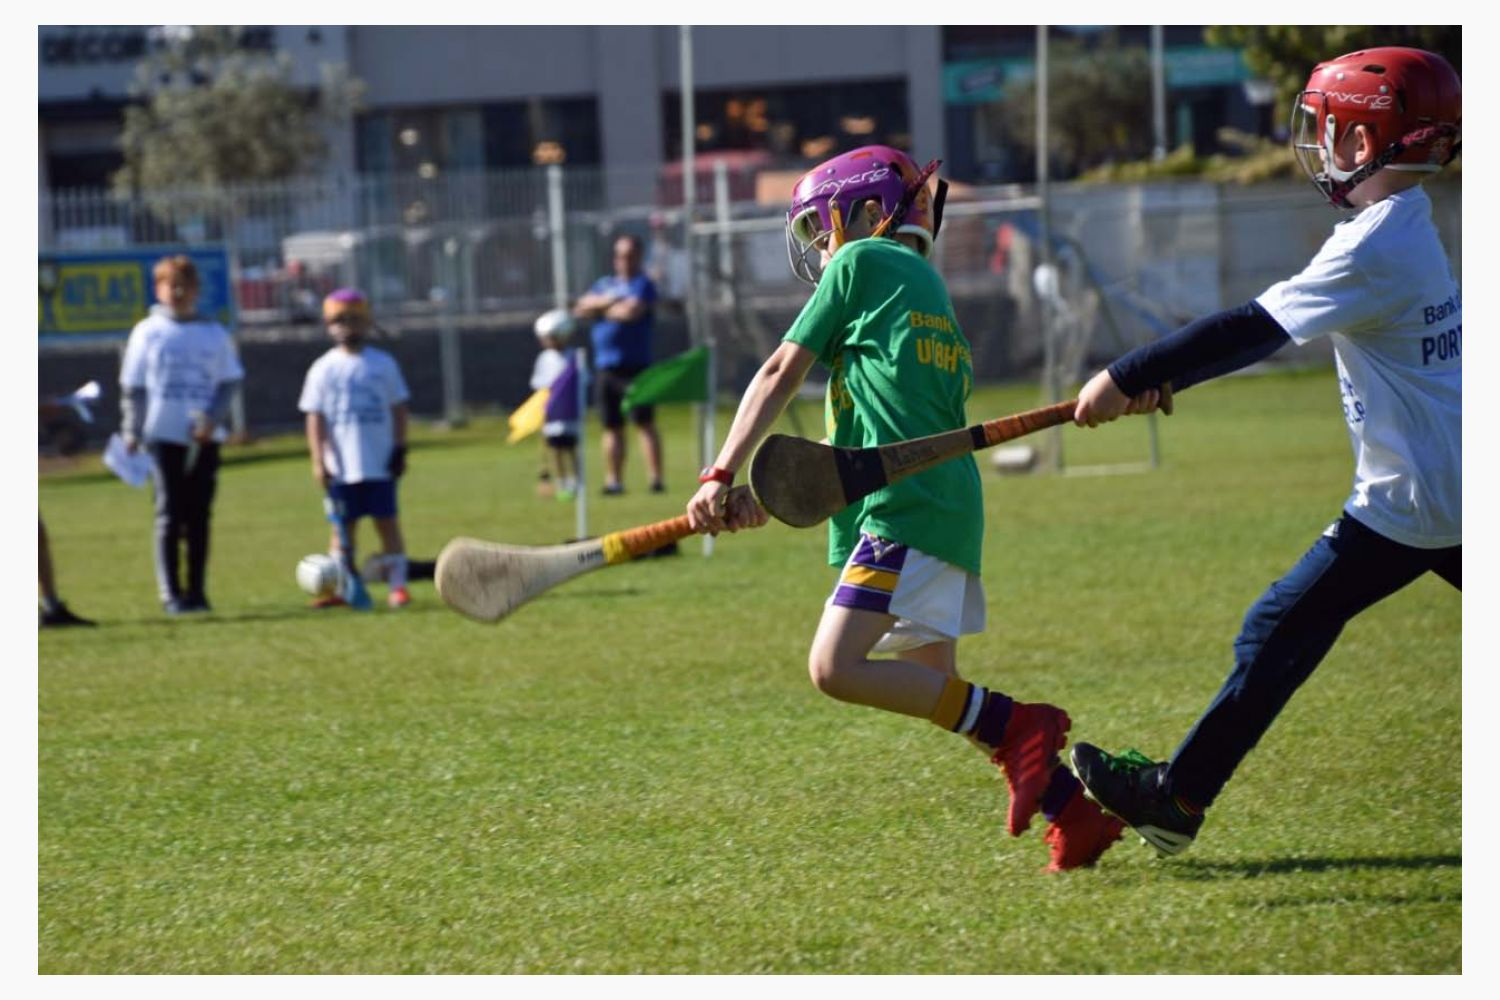 Photos from the BOI Hurling Mini All-Irelands